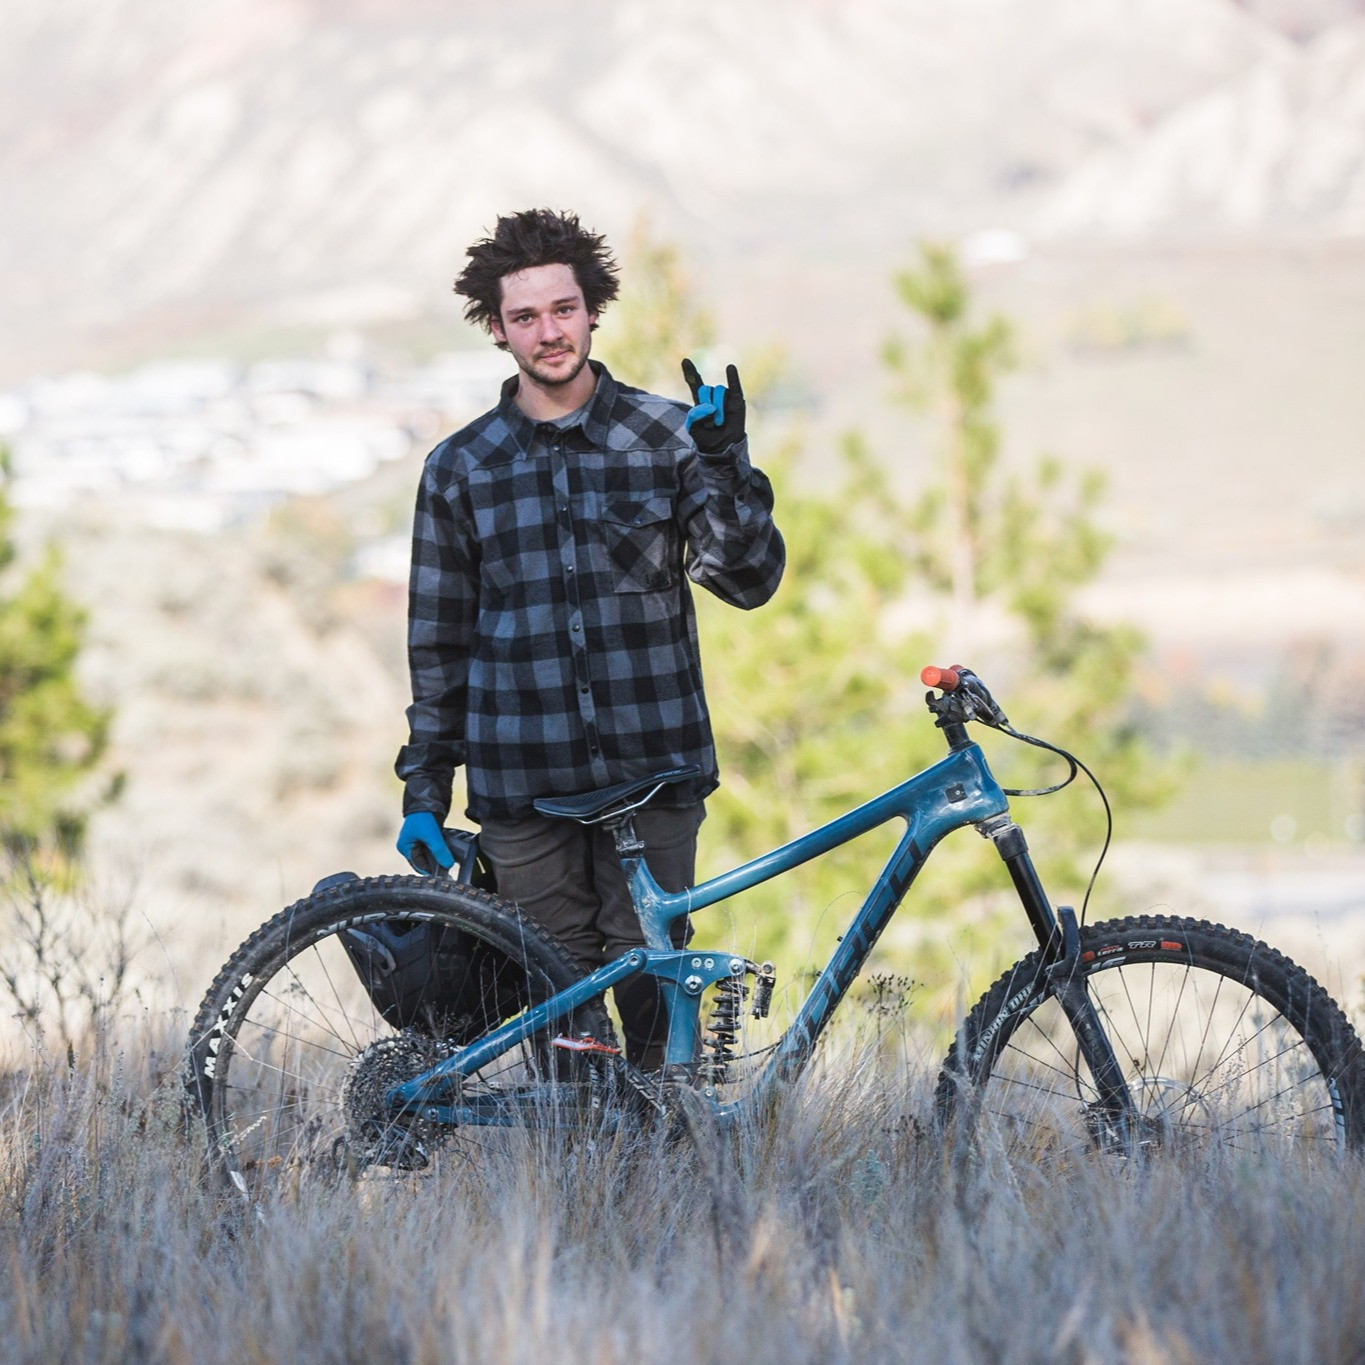 Jakob Hartman and the Norco Range